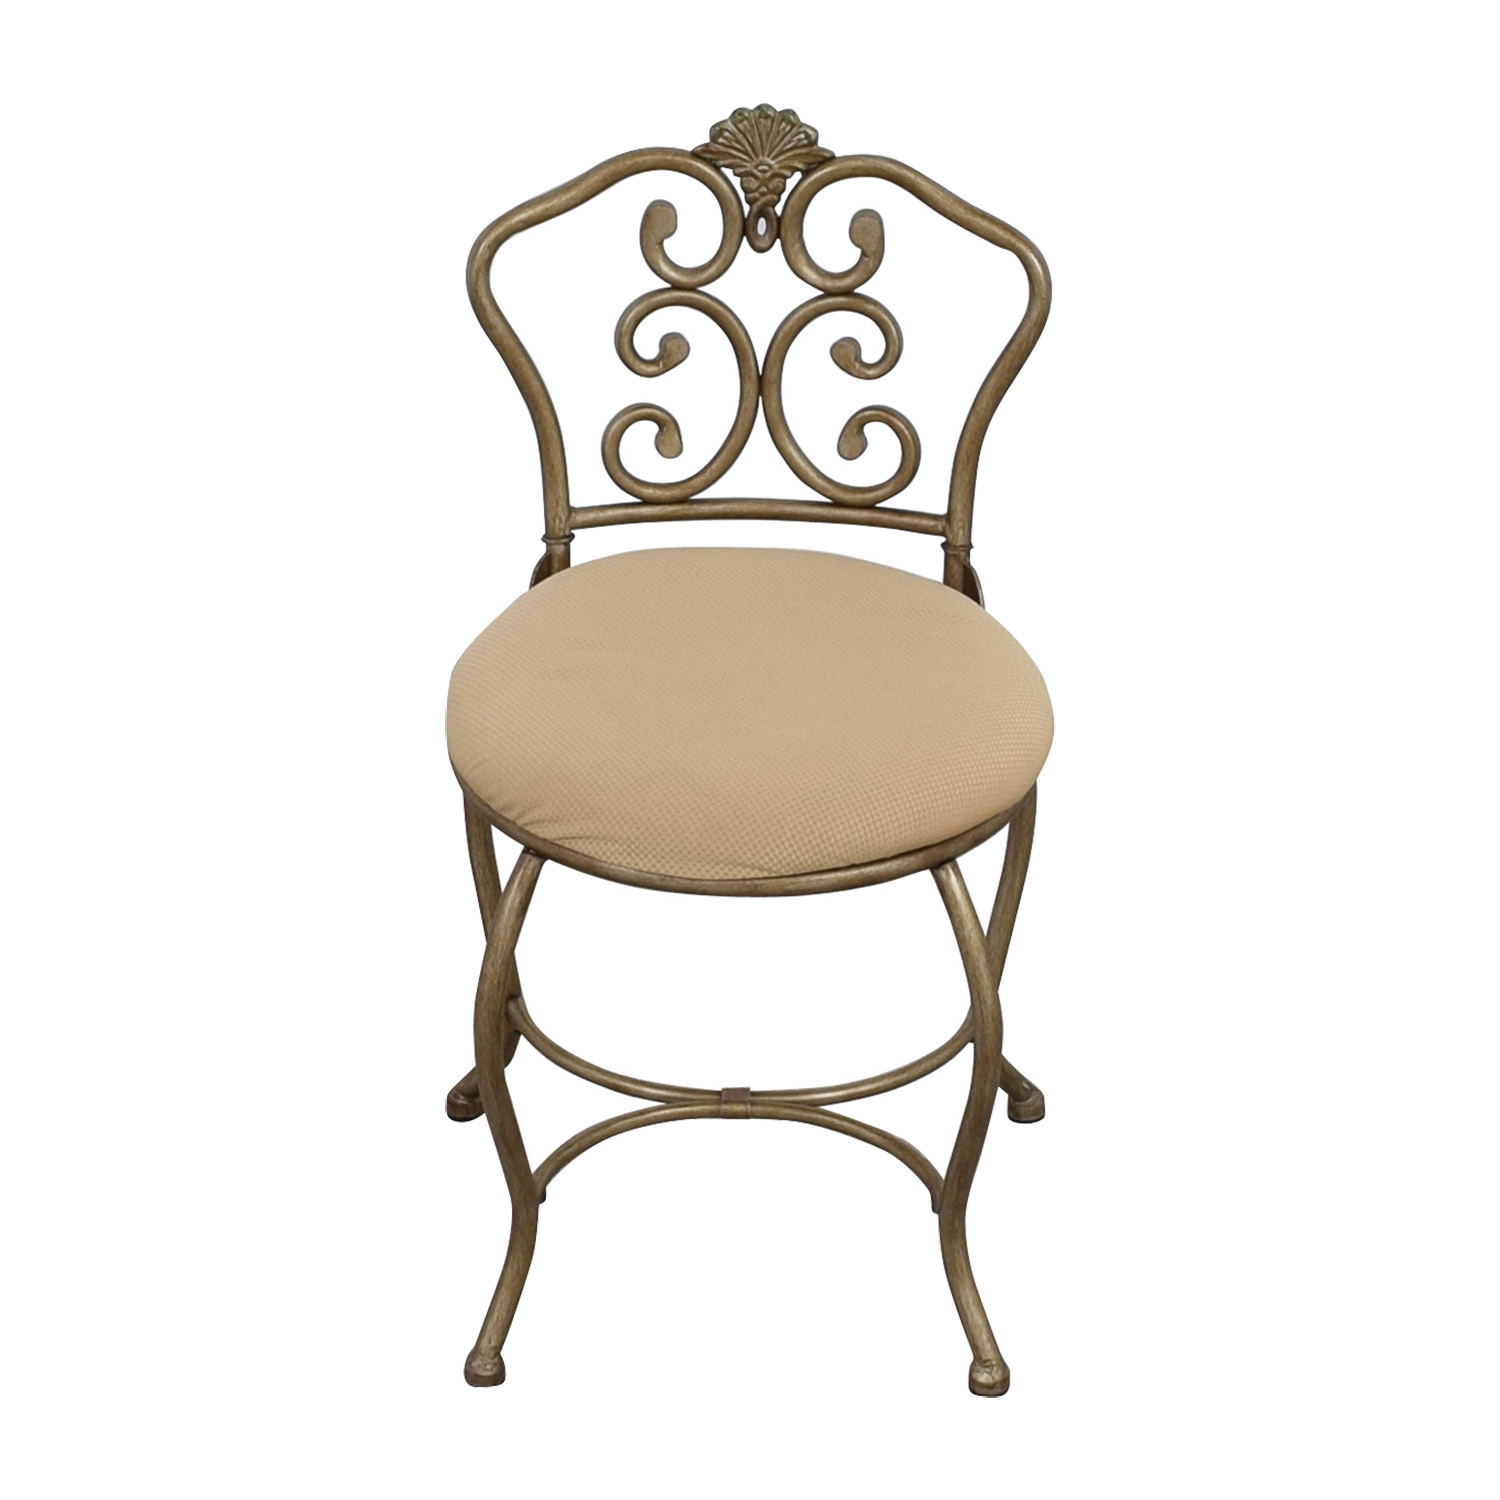 shop Tan Seat with Silver Frame Chair online